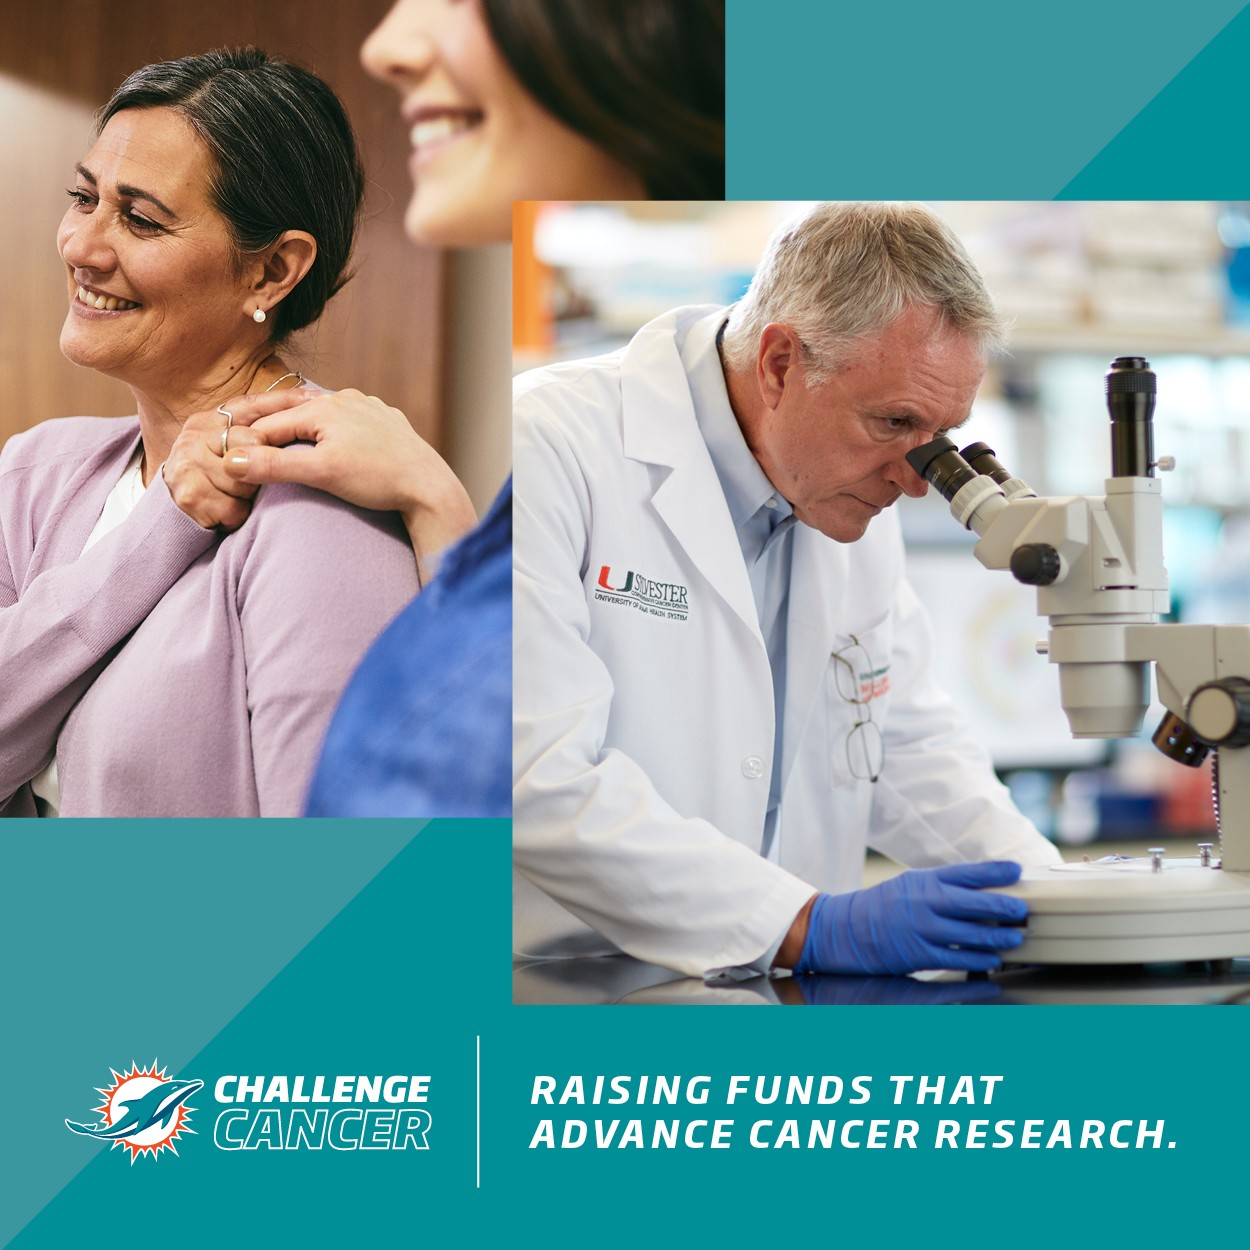 raising funds that advance cancer research